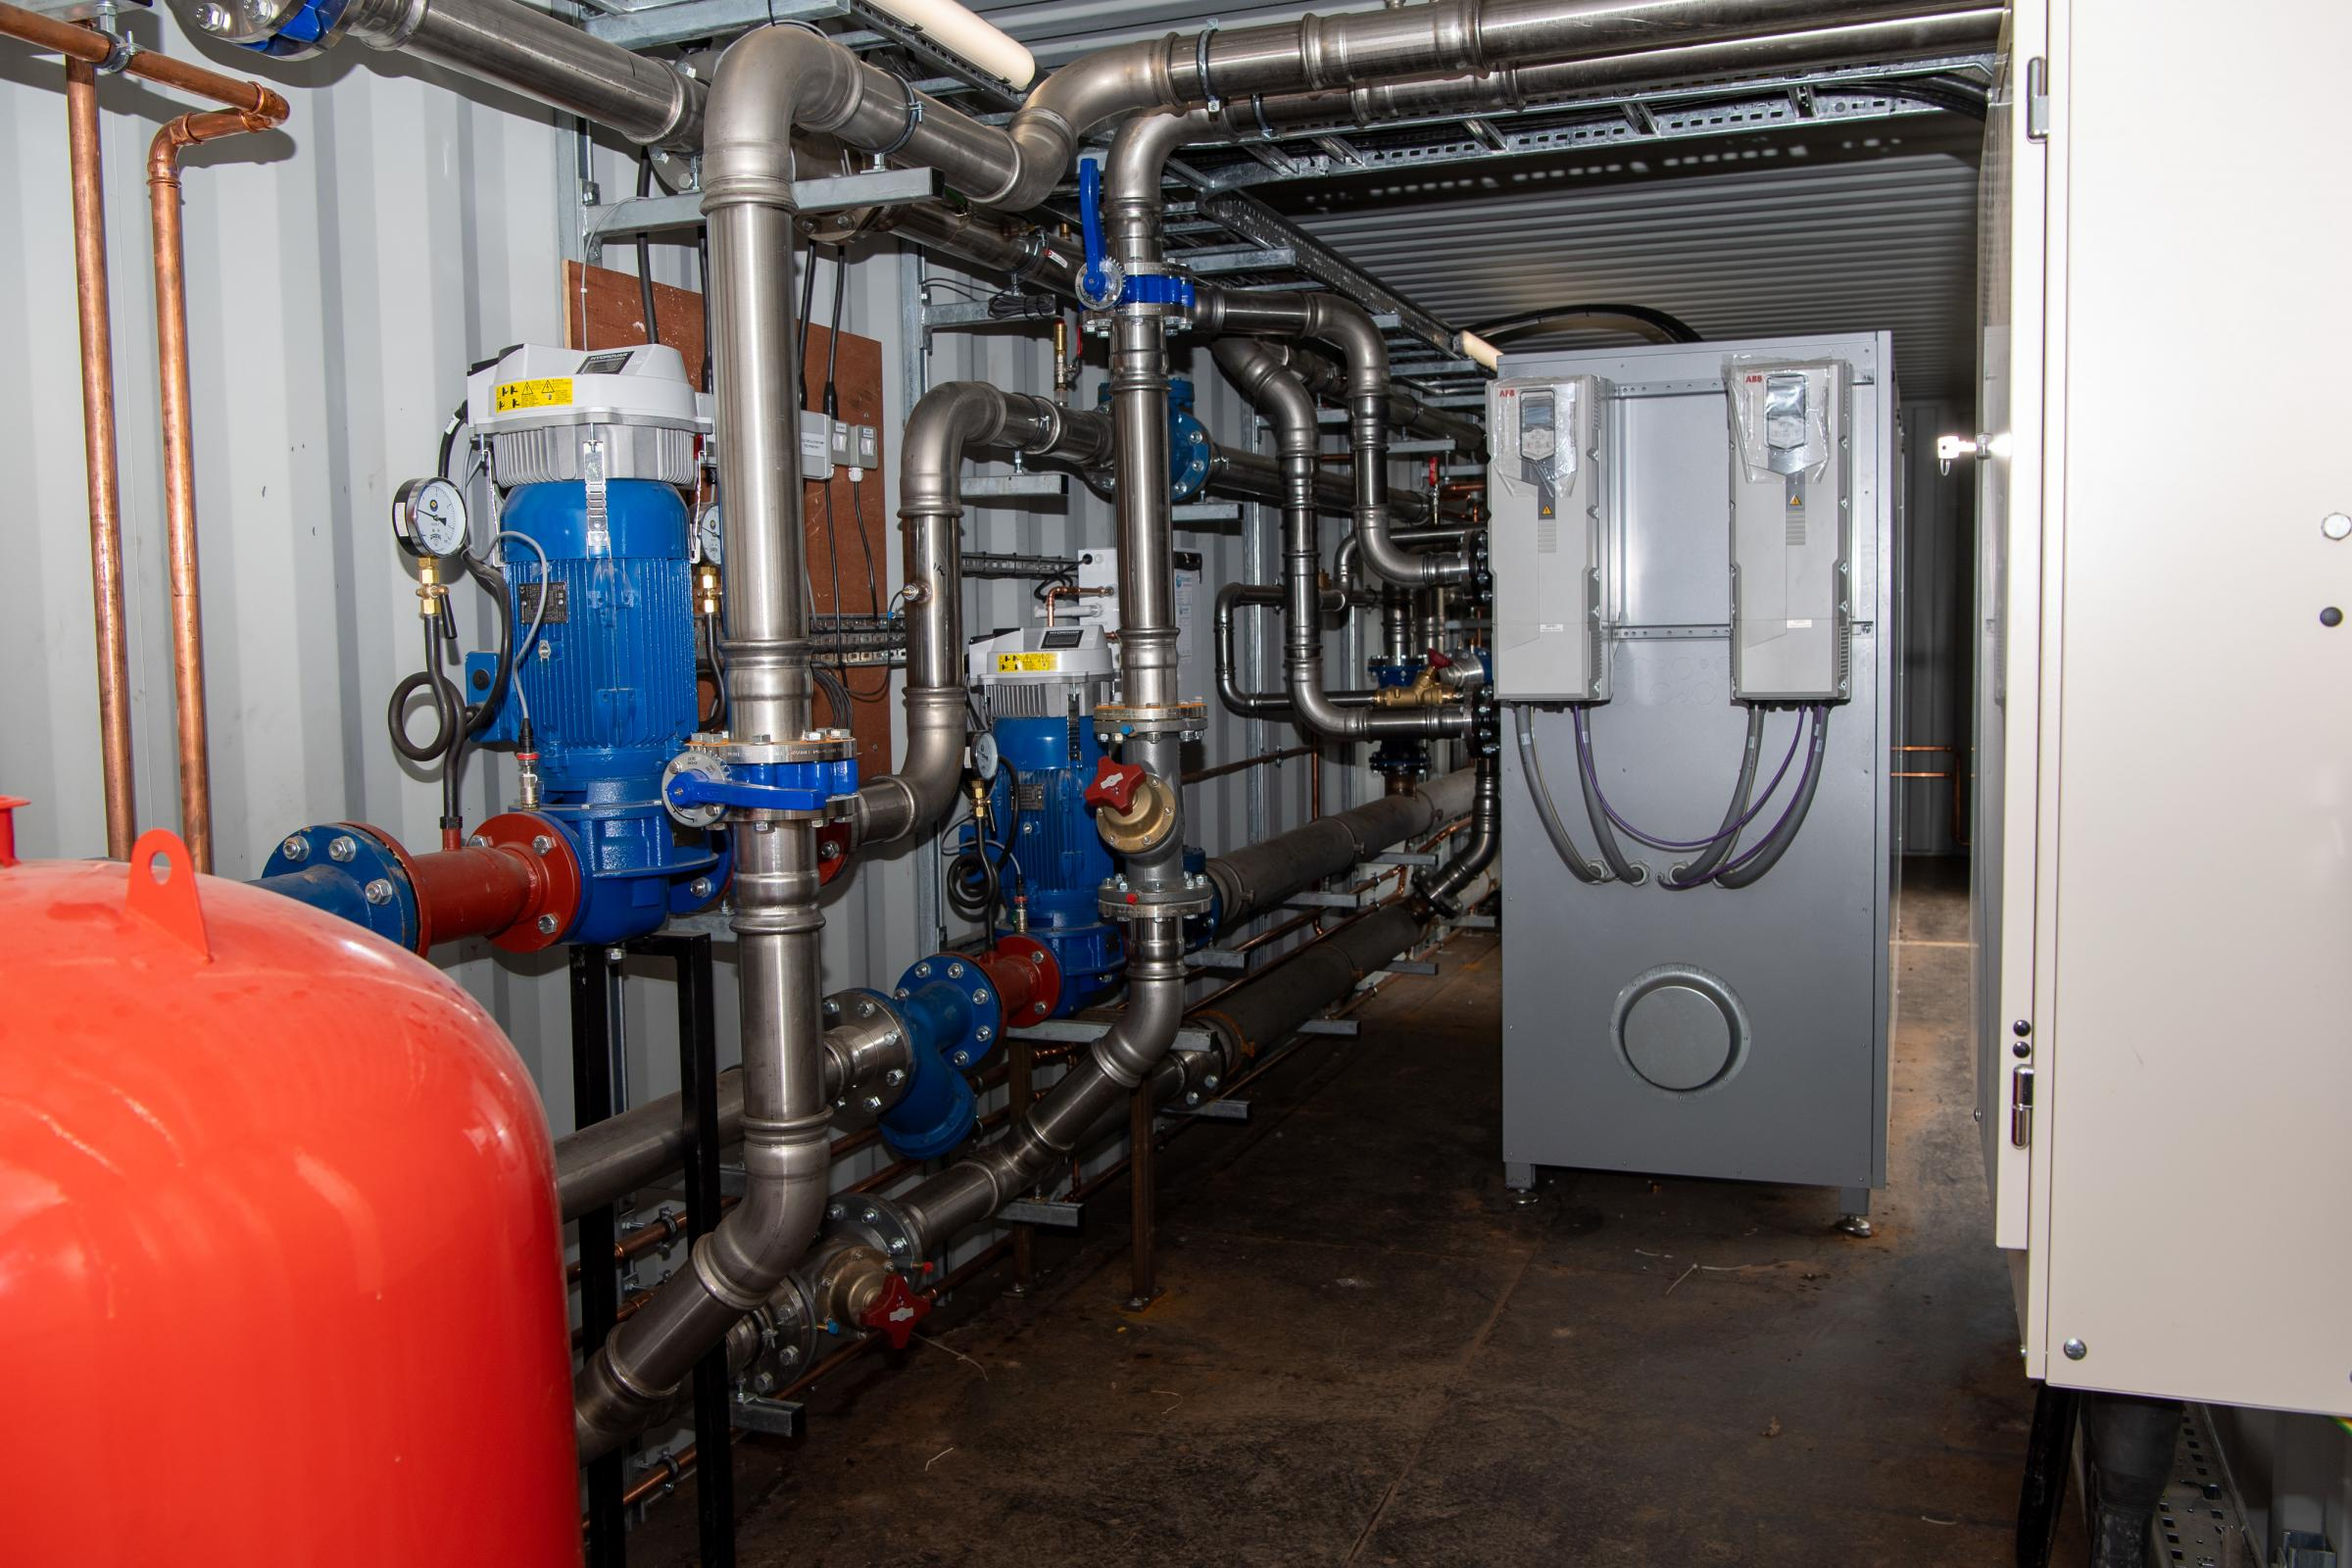 the container that houses the Ground source heat pump system to heat the poultry unit Ref:RH210321145 Rob Haining / The Scottish Farmer...